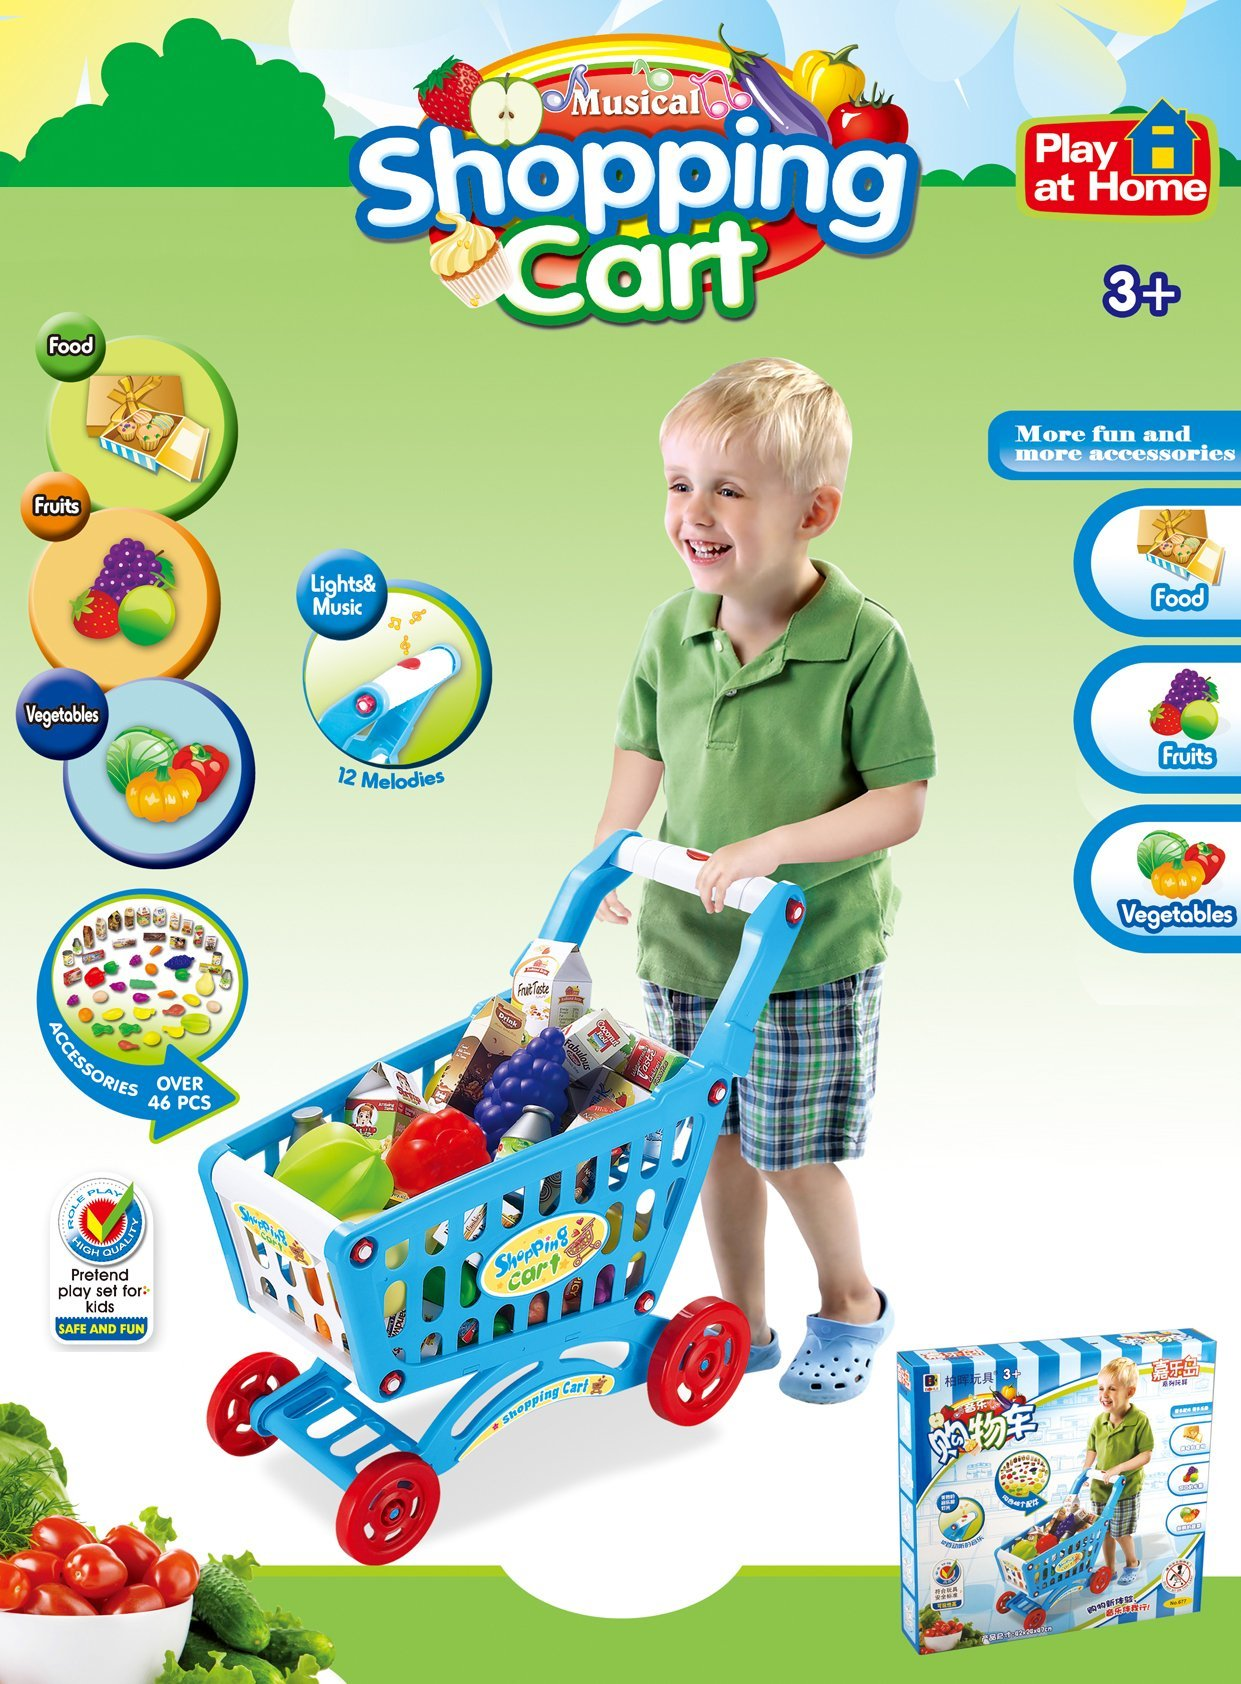 AMPERSAND SHOPS Musical Toy Shopping Cart with Goodies (Blue) by AMPERSAND SHOPS (Image #2)